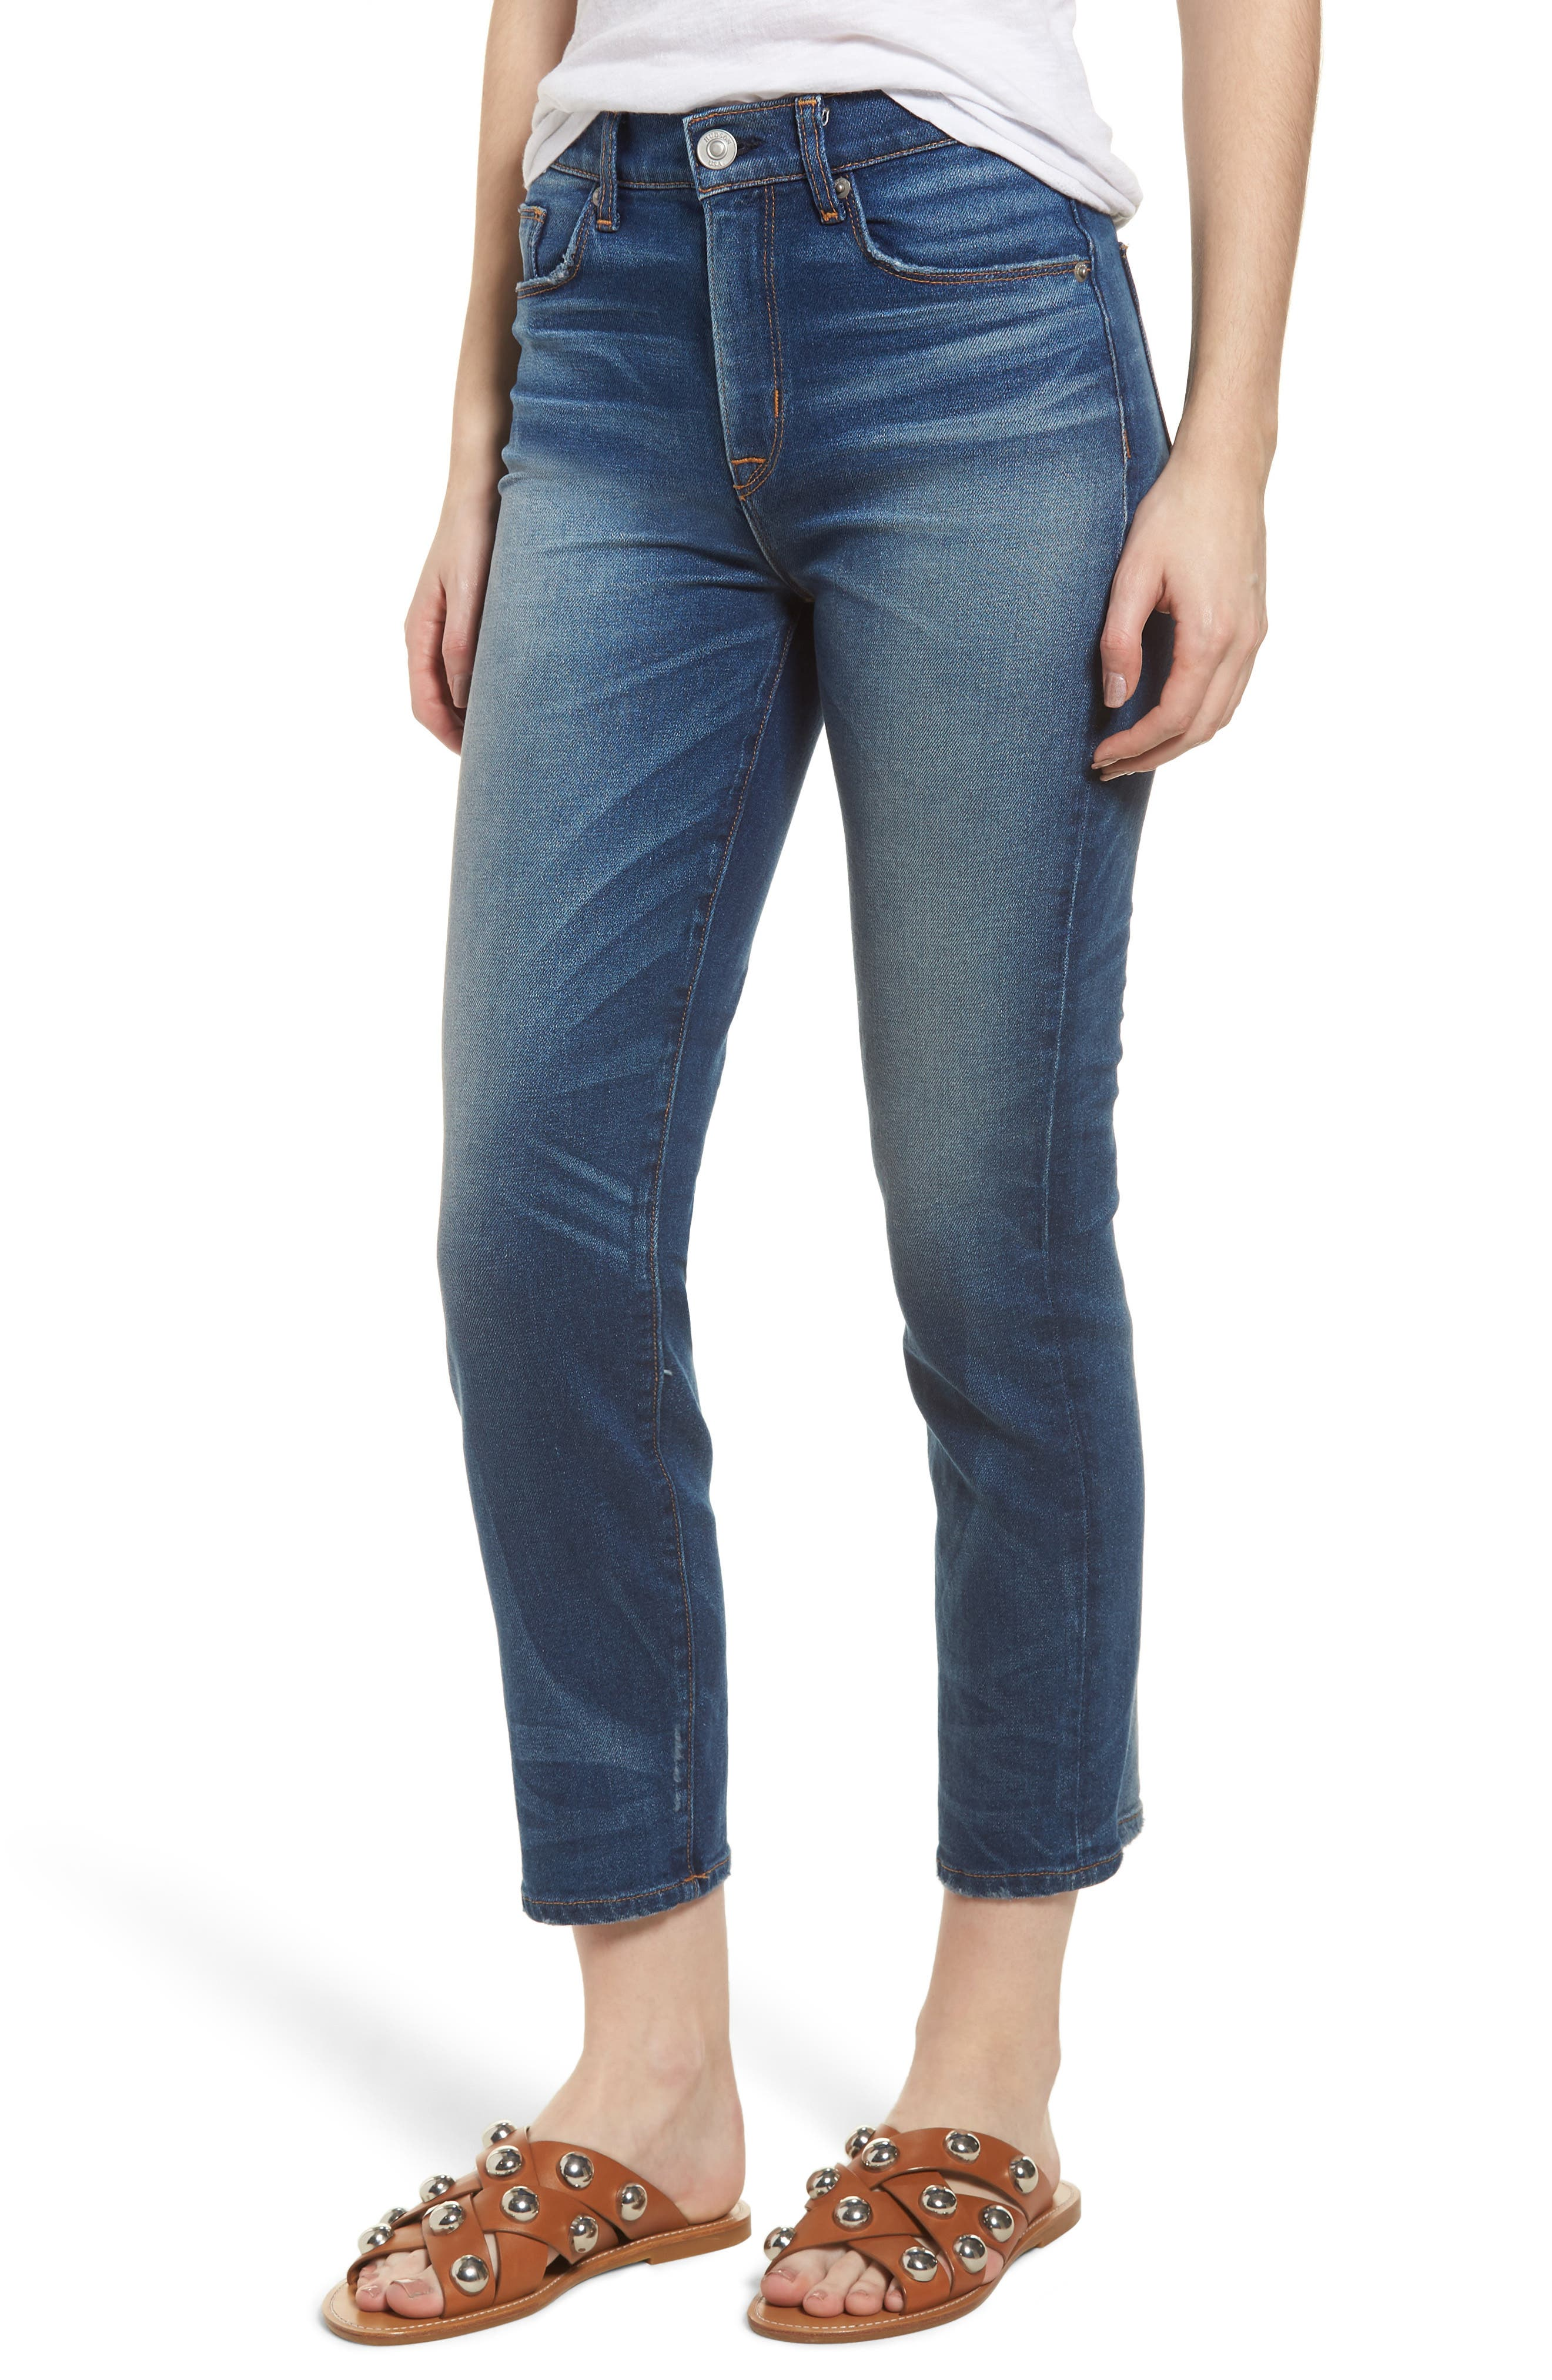 Zoeey High Waist Crop Straight Leg Jeans,                             Main thumbnail 1, color,                             Undenied